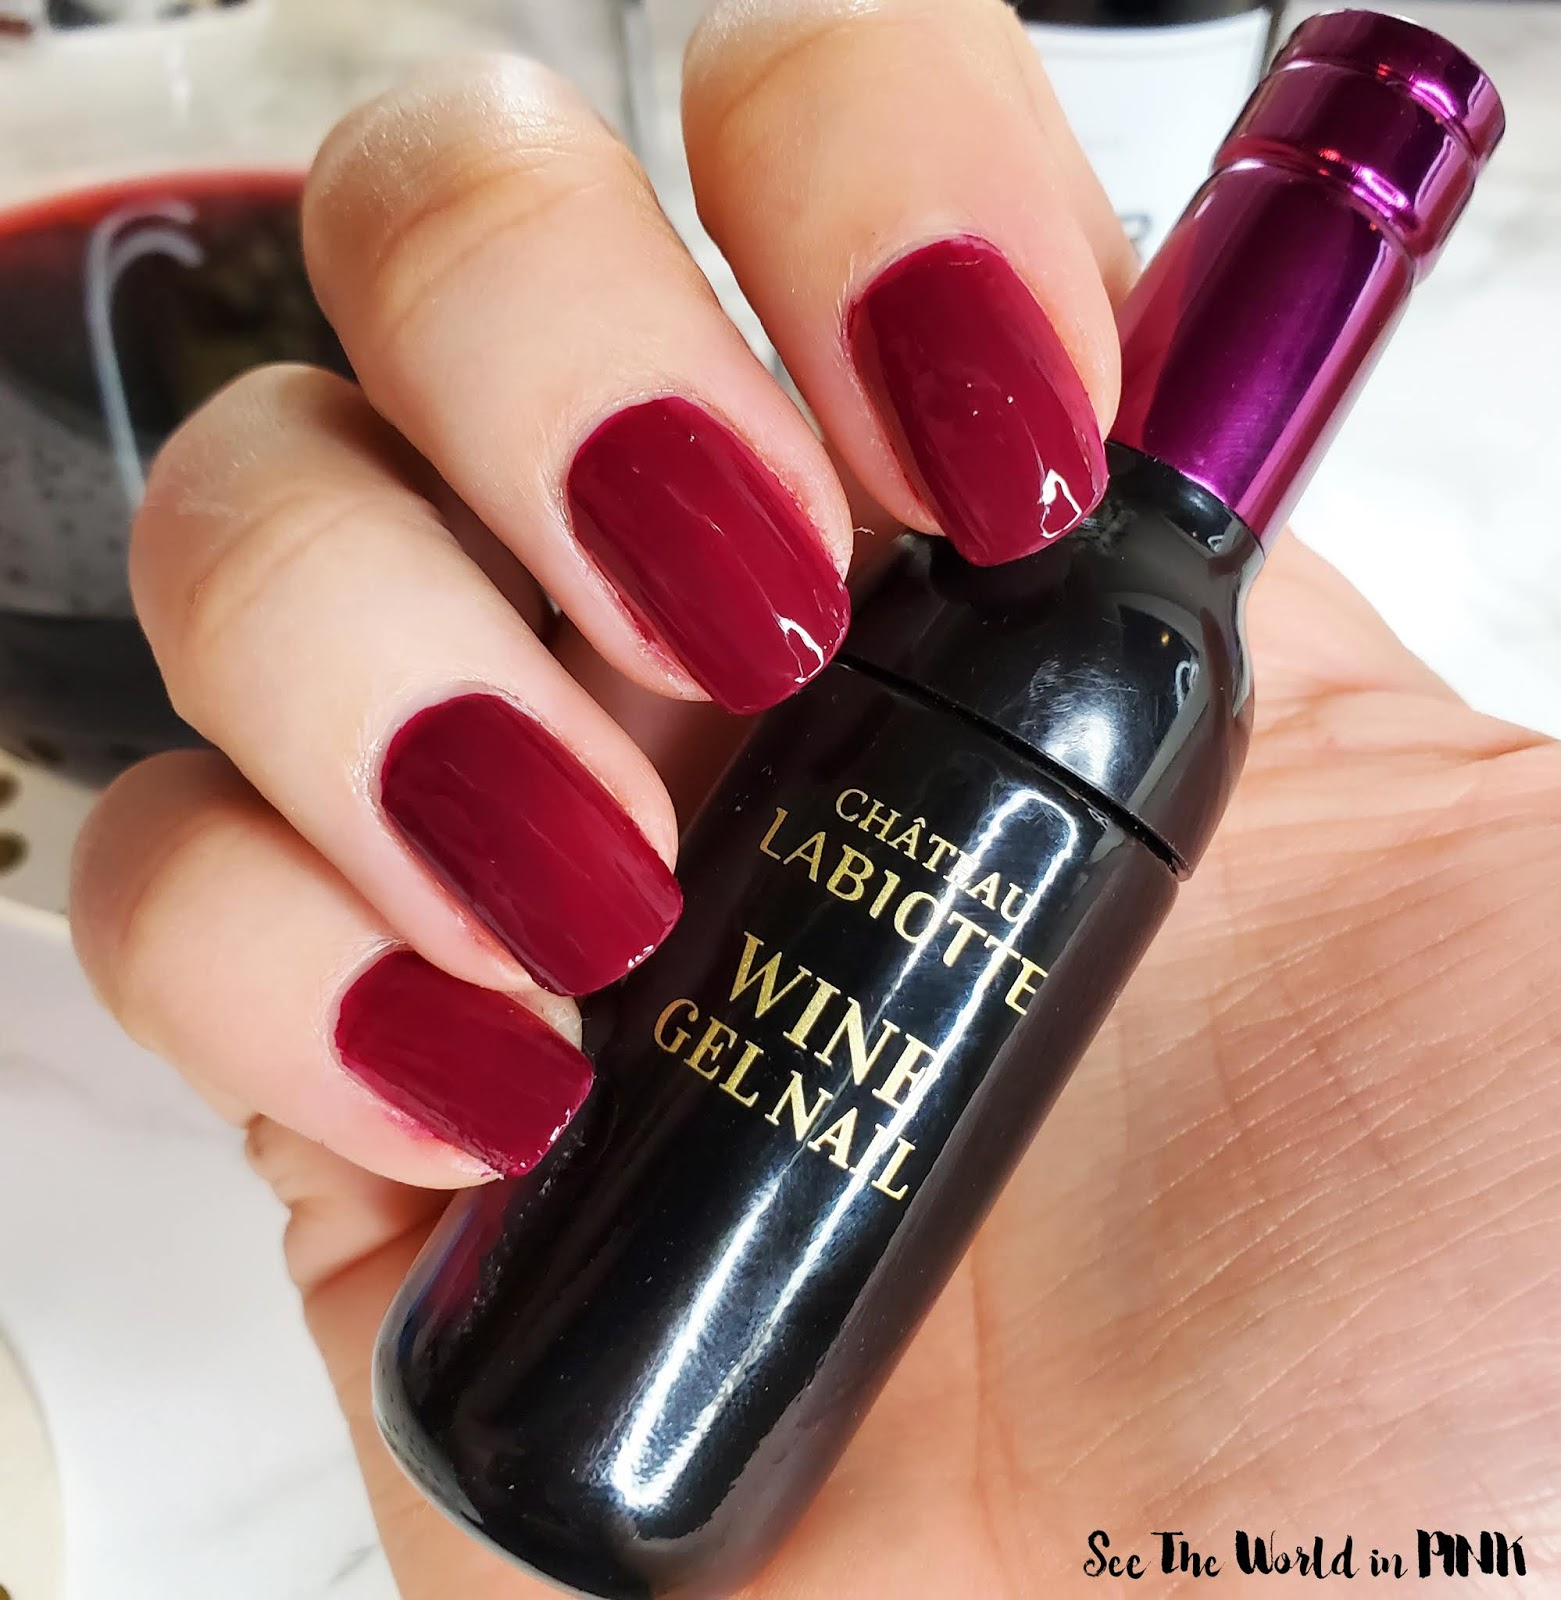 Manicure Monday - Labiotte Chateau Labiotte Wine Gel Nail in Nebbiolo Red